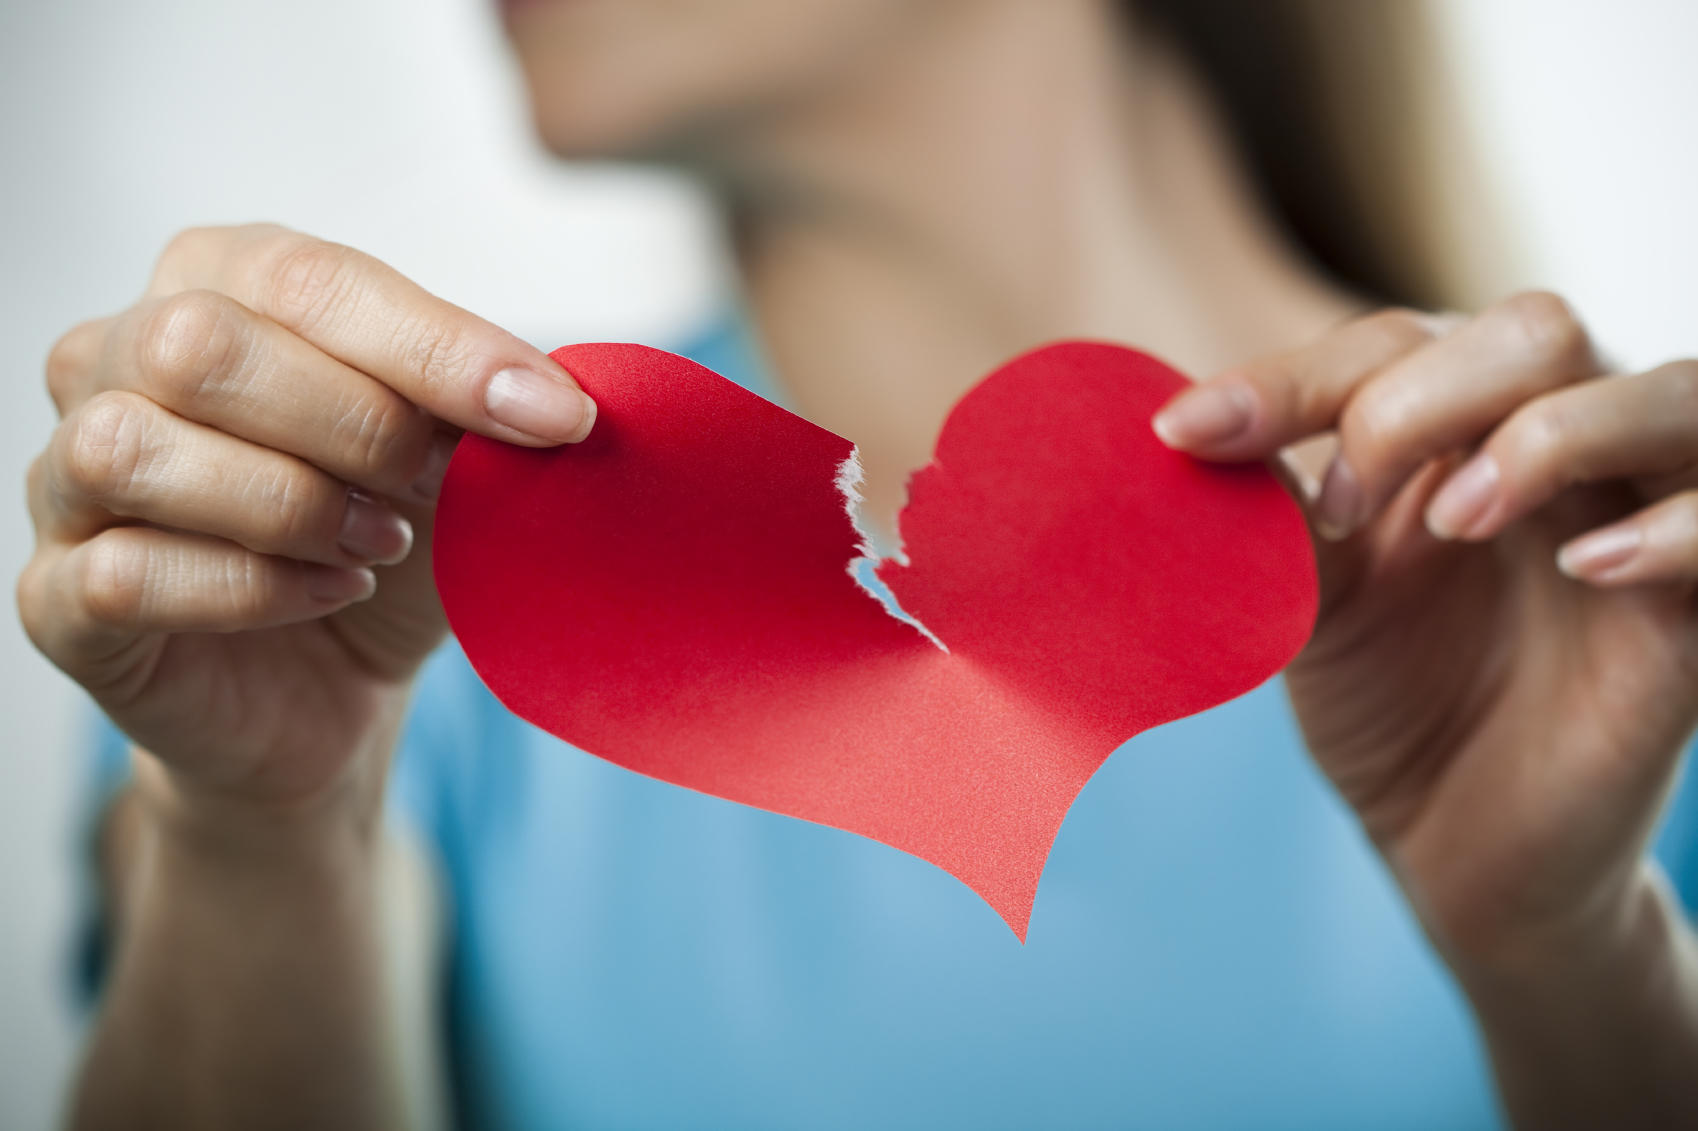 breakup-divorce-torn-heart